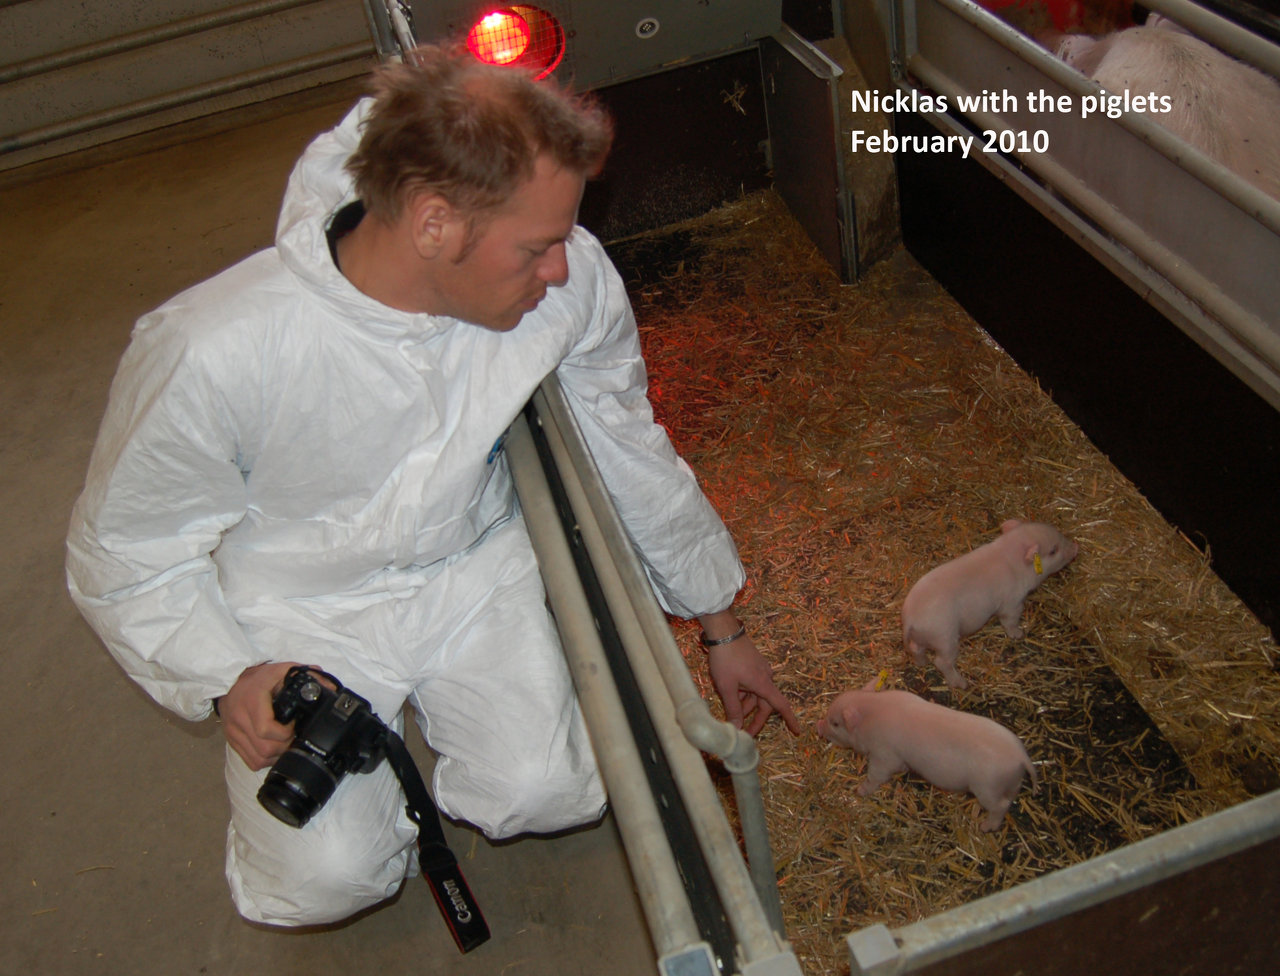 Nicklas with piglets I.jpg